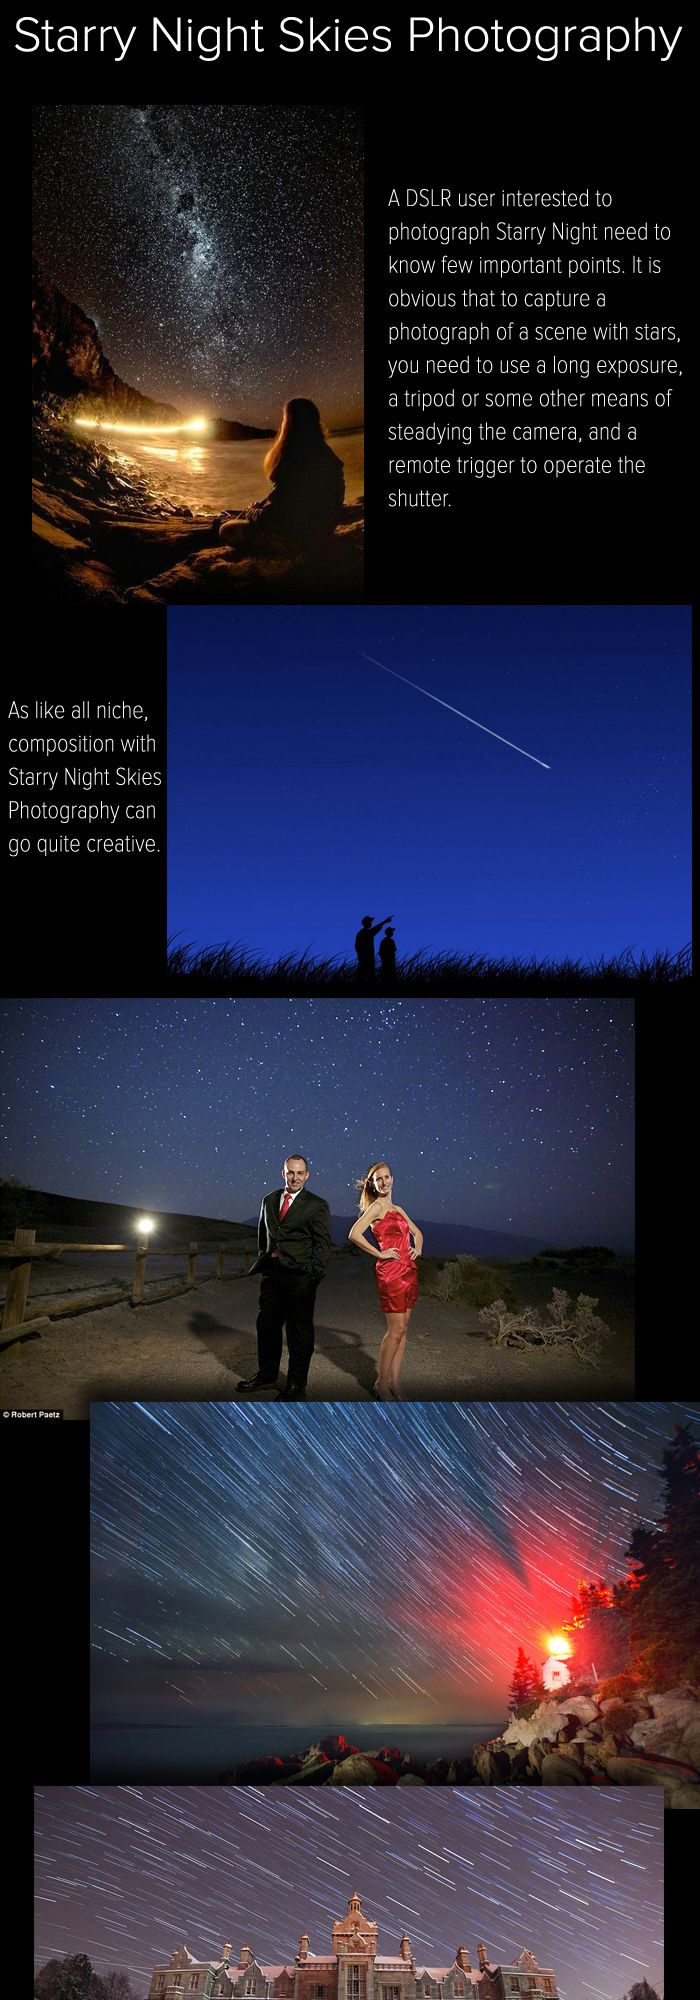 Starry Night Skies Photography actually falls under Astrophotography. A DSLR user interested to photograph Starry Night need to know few important points.